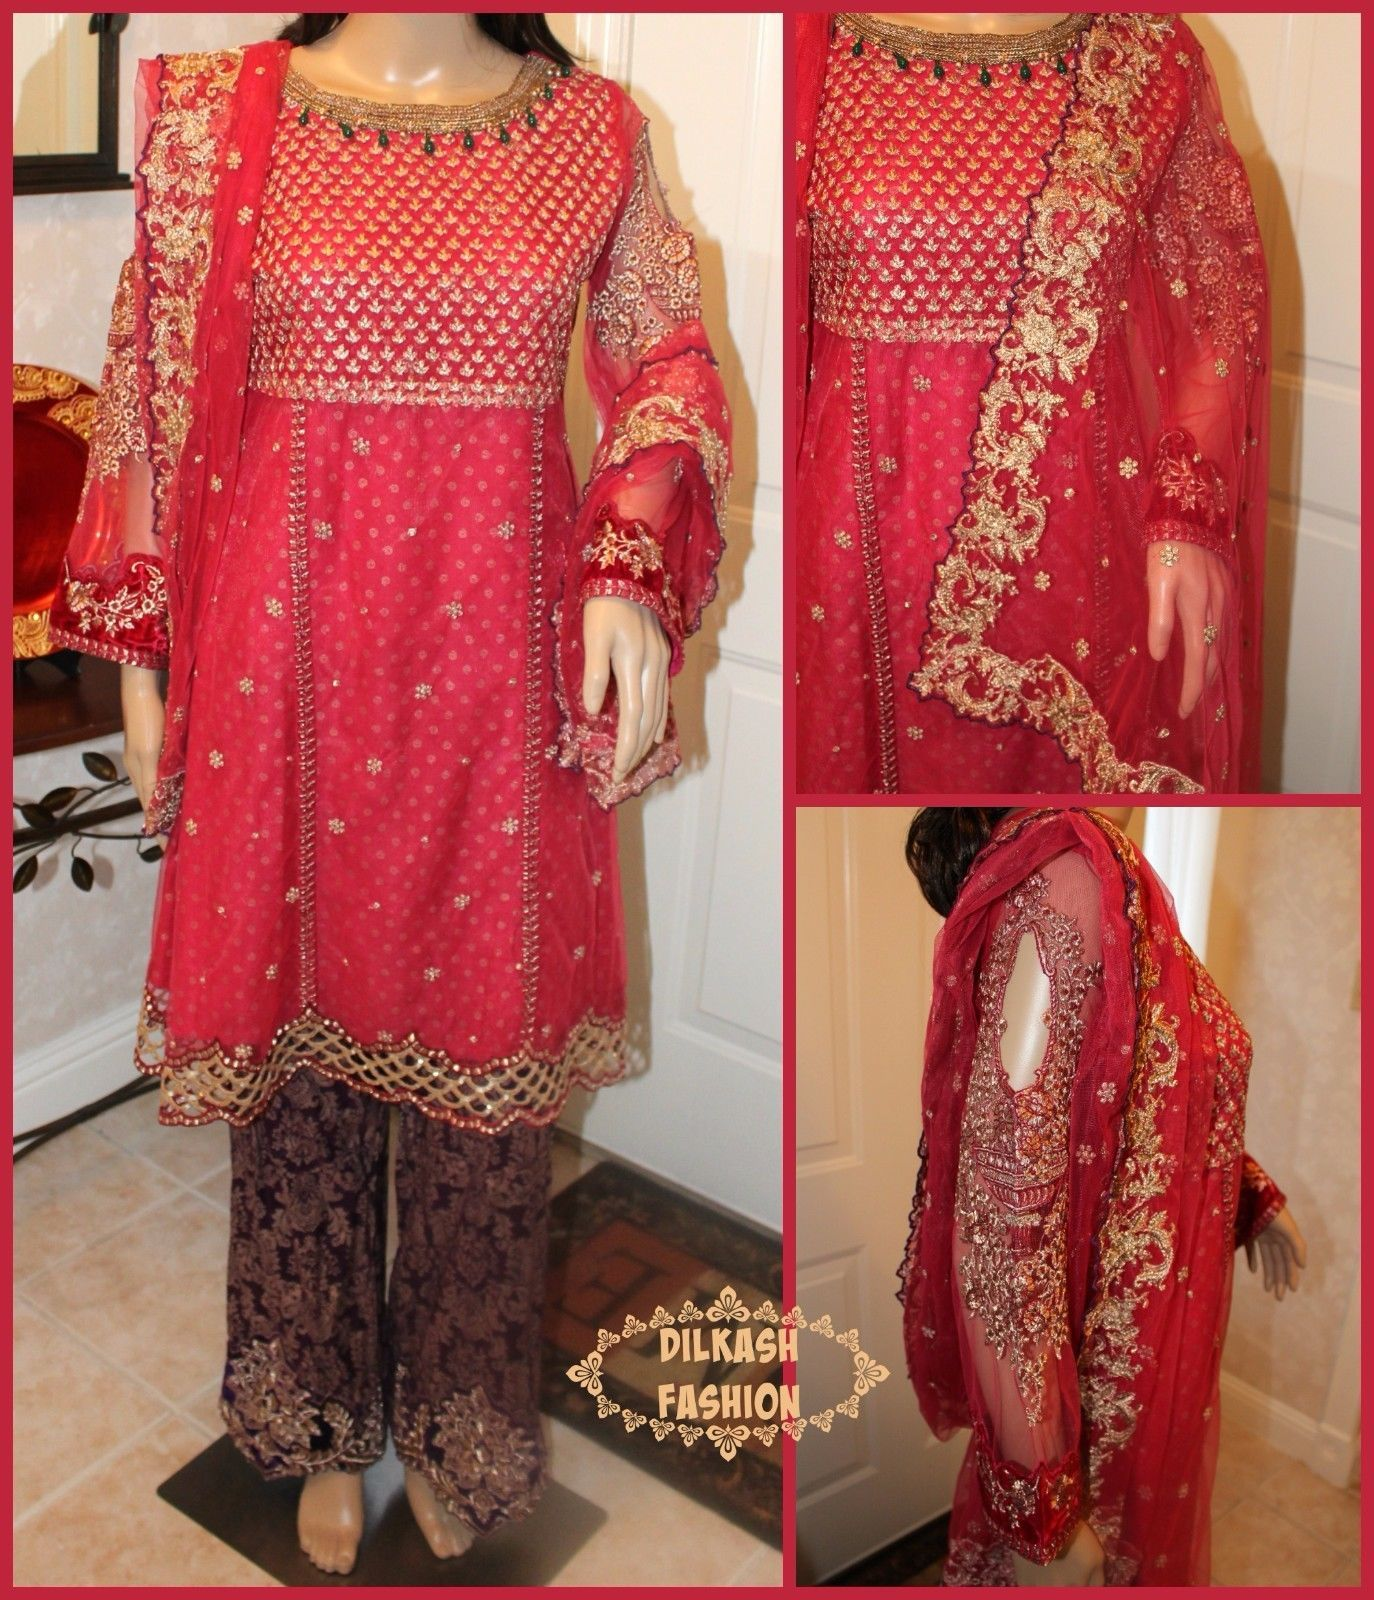 Primary image for Pakistani Pink Frock Style Shirt Net Suit w/ Threadwork, Sequins & Pearls, 3-pc